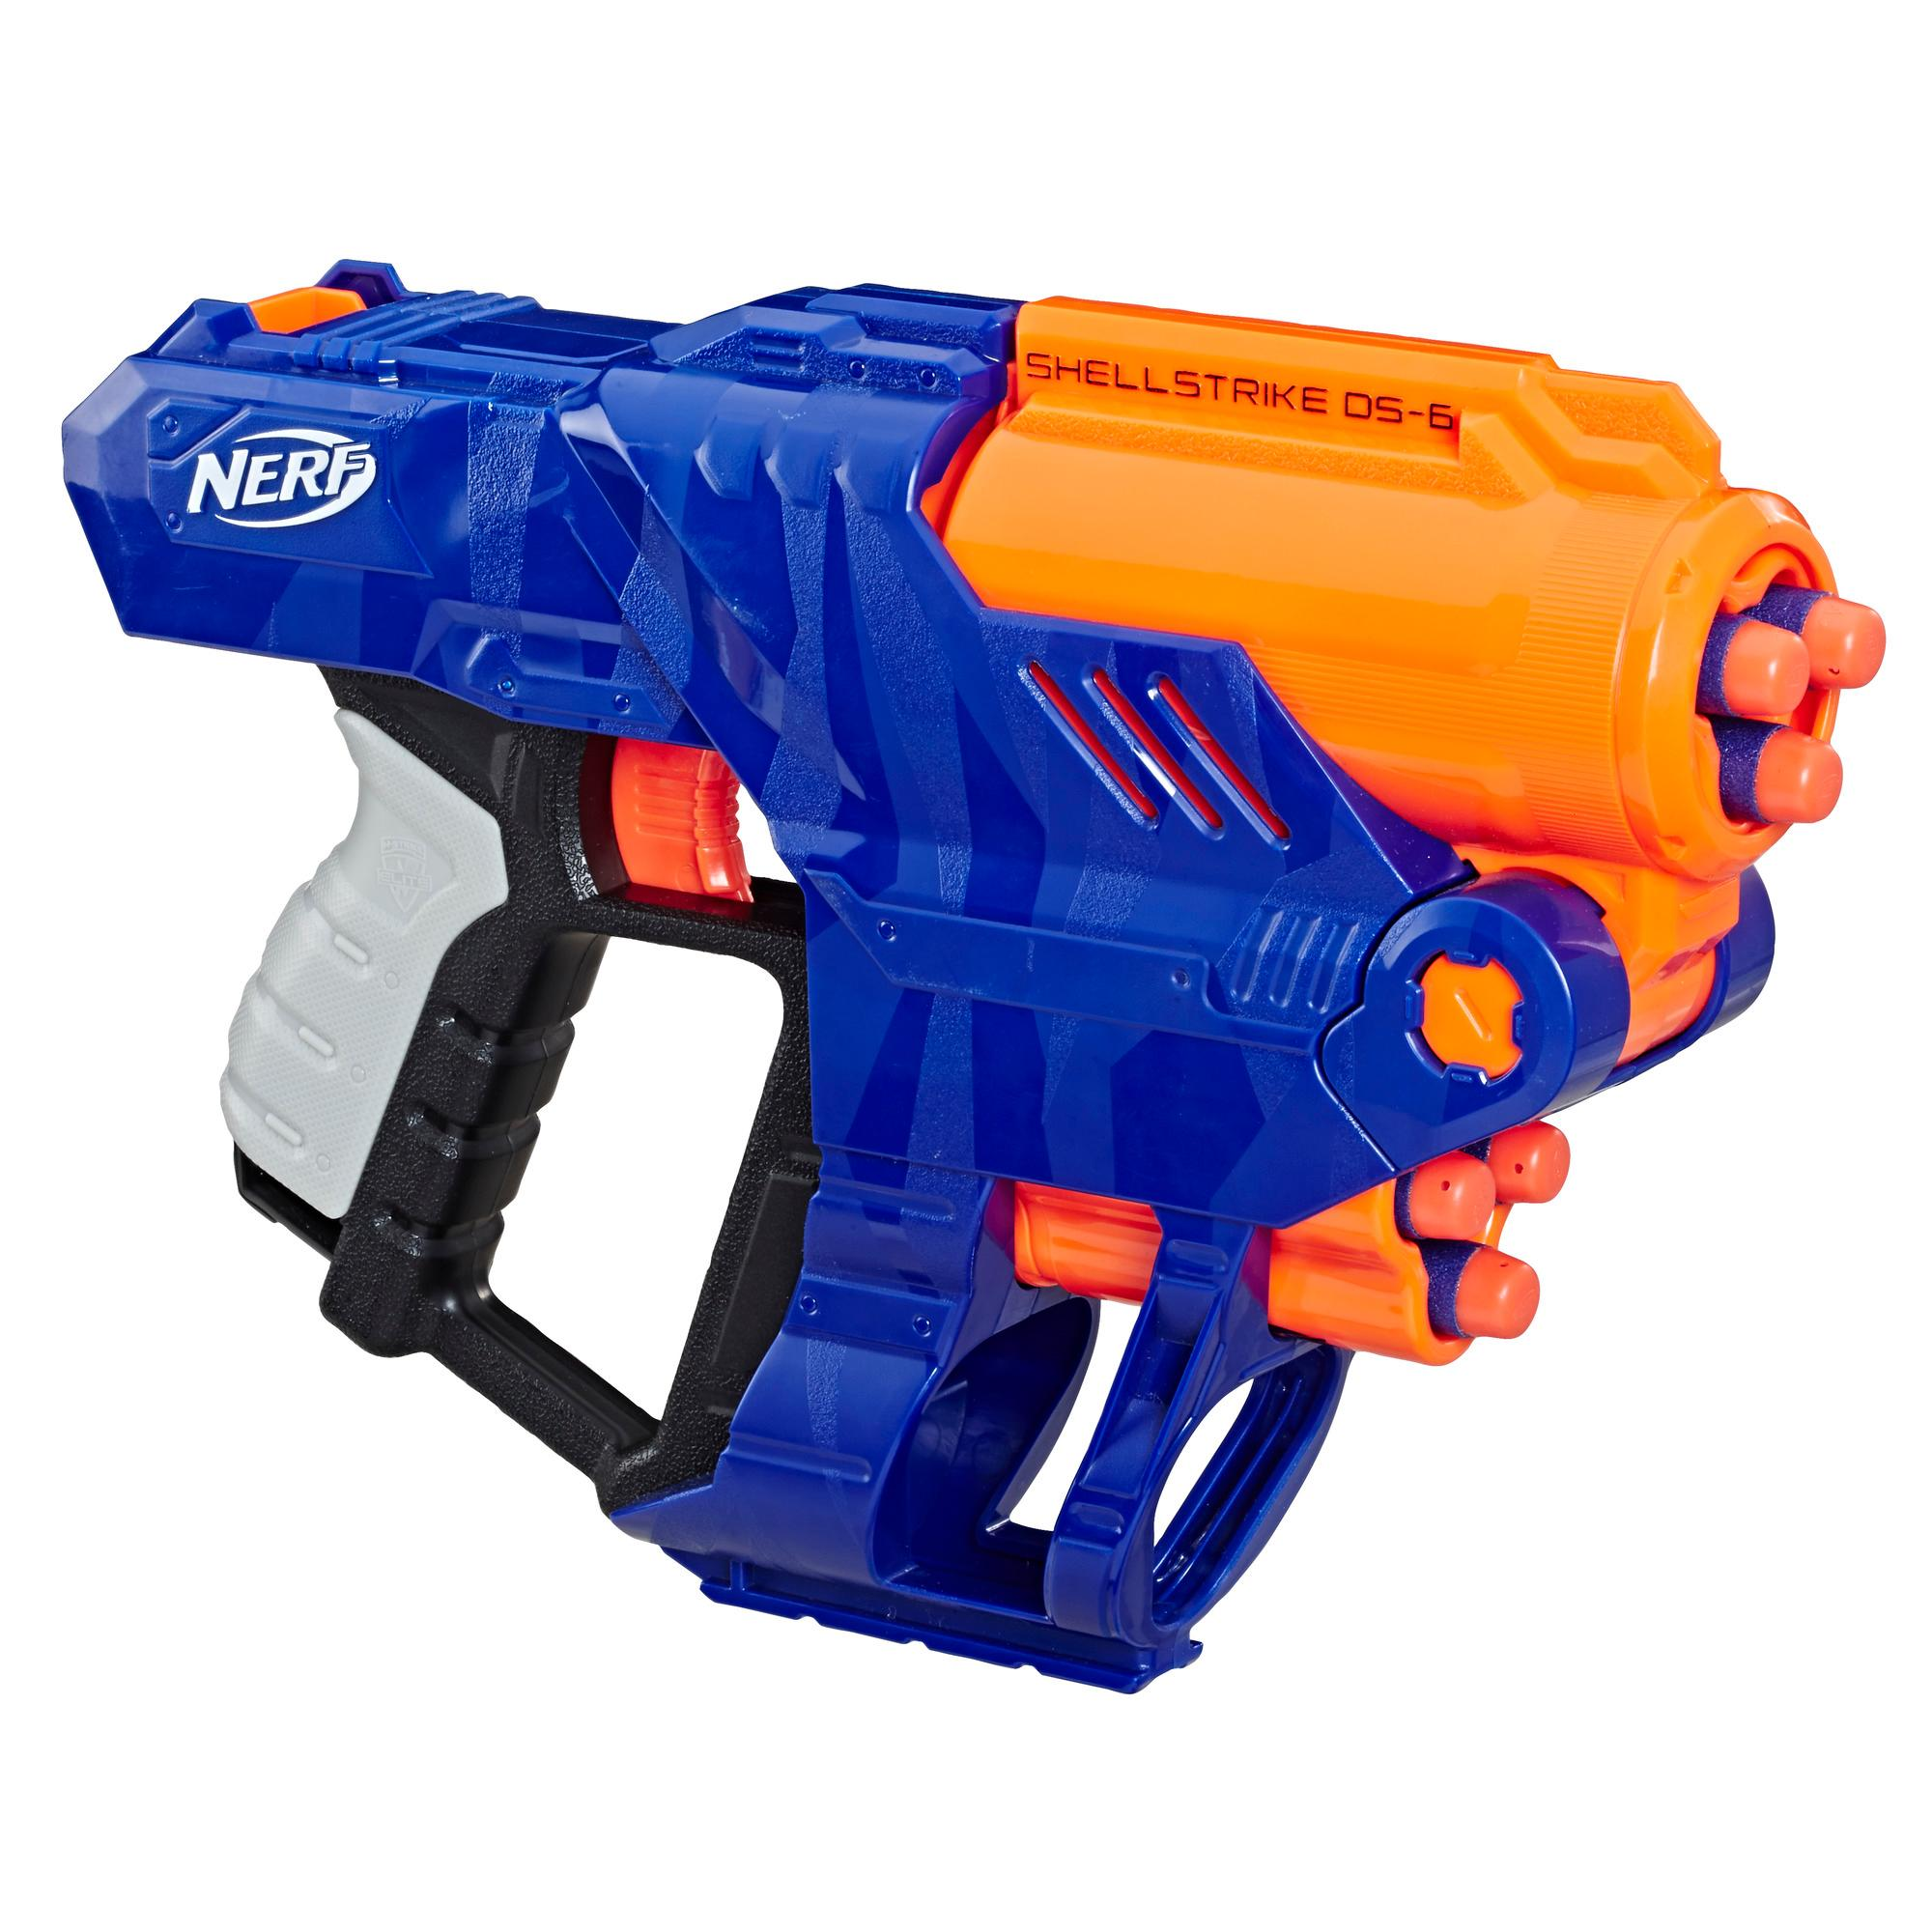 Nerf Elite Shellstrike DS-6 Blaster - Fires 3 Darts From Shells -- Includes 3 Shells and 6 Official Nerf Elite Darts